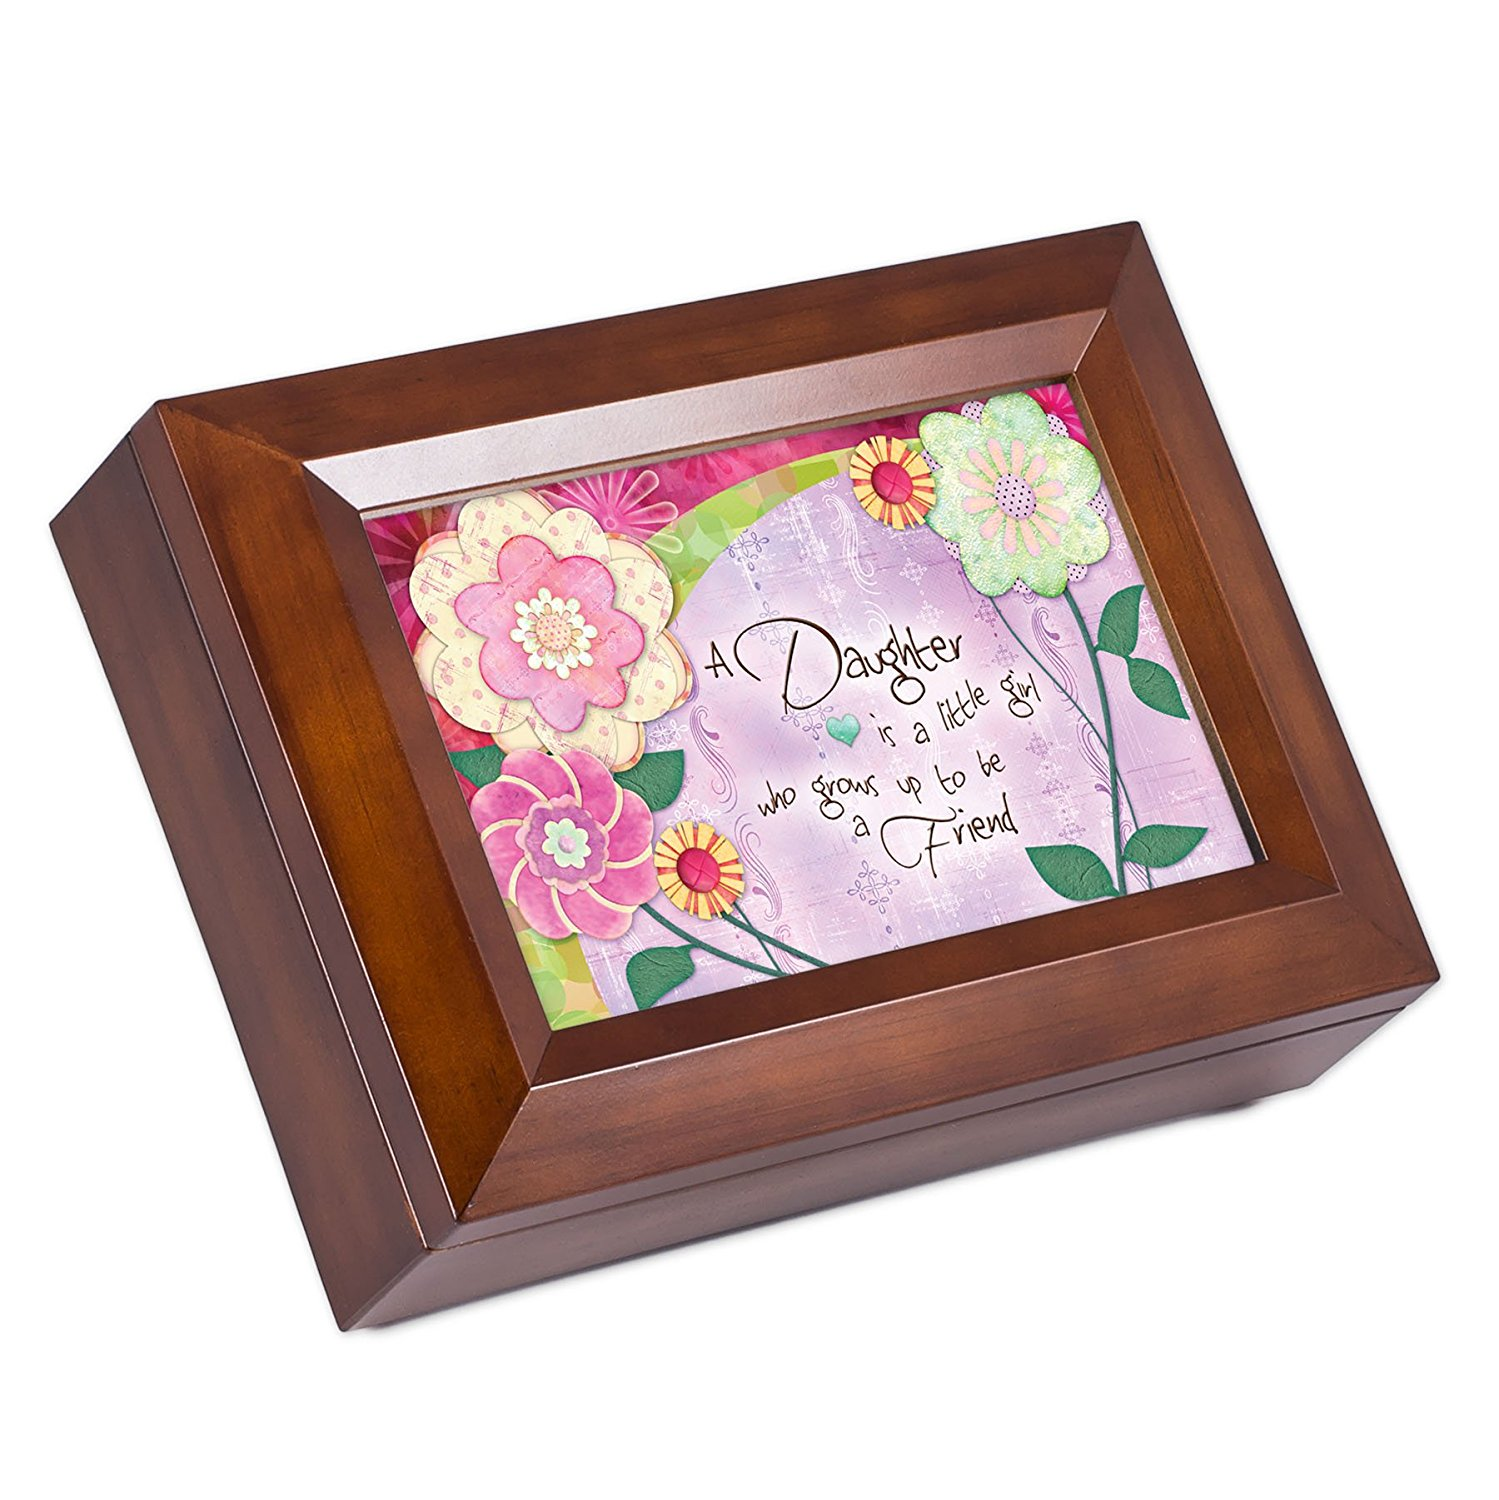 Daughter A Little Girl Who Grows Up To Be A Friend Wood Finish Jewelry Music Box You Are My Sunshine